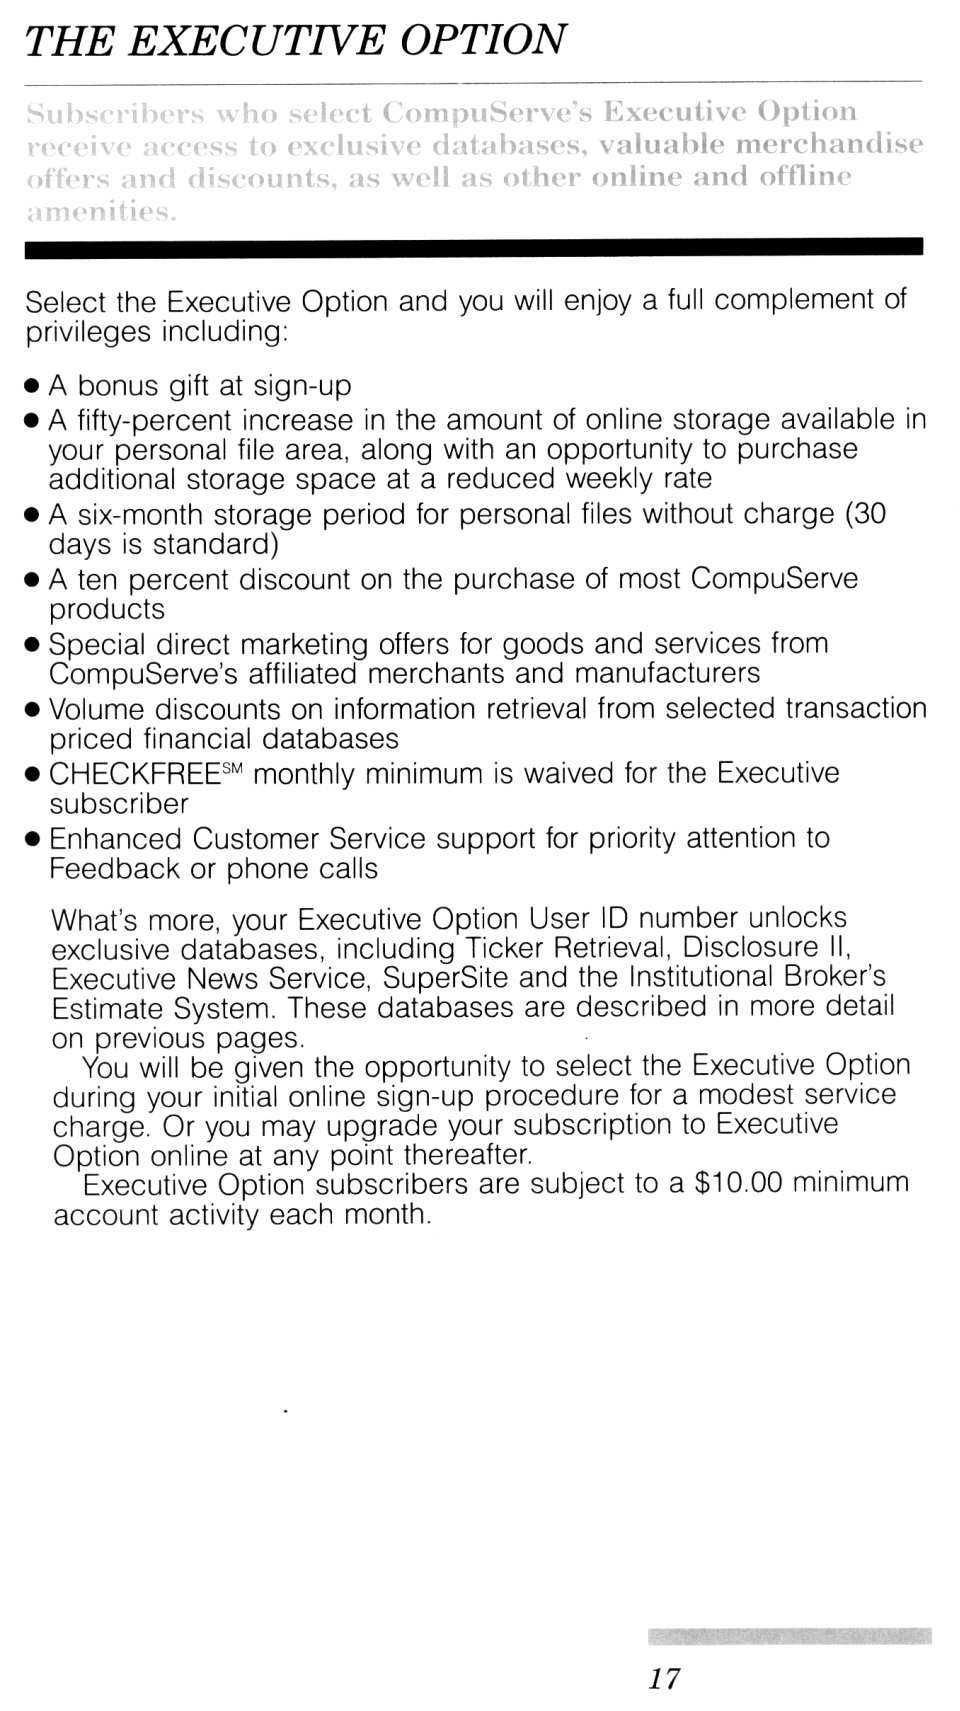 [CompuServe IntroPak page 17/44  The Executive Option]